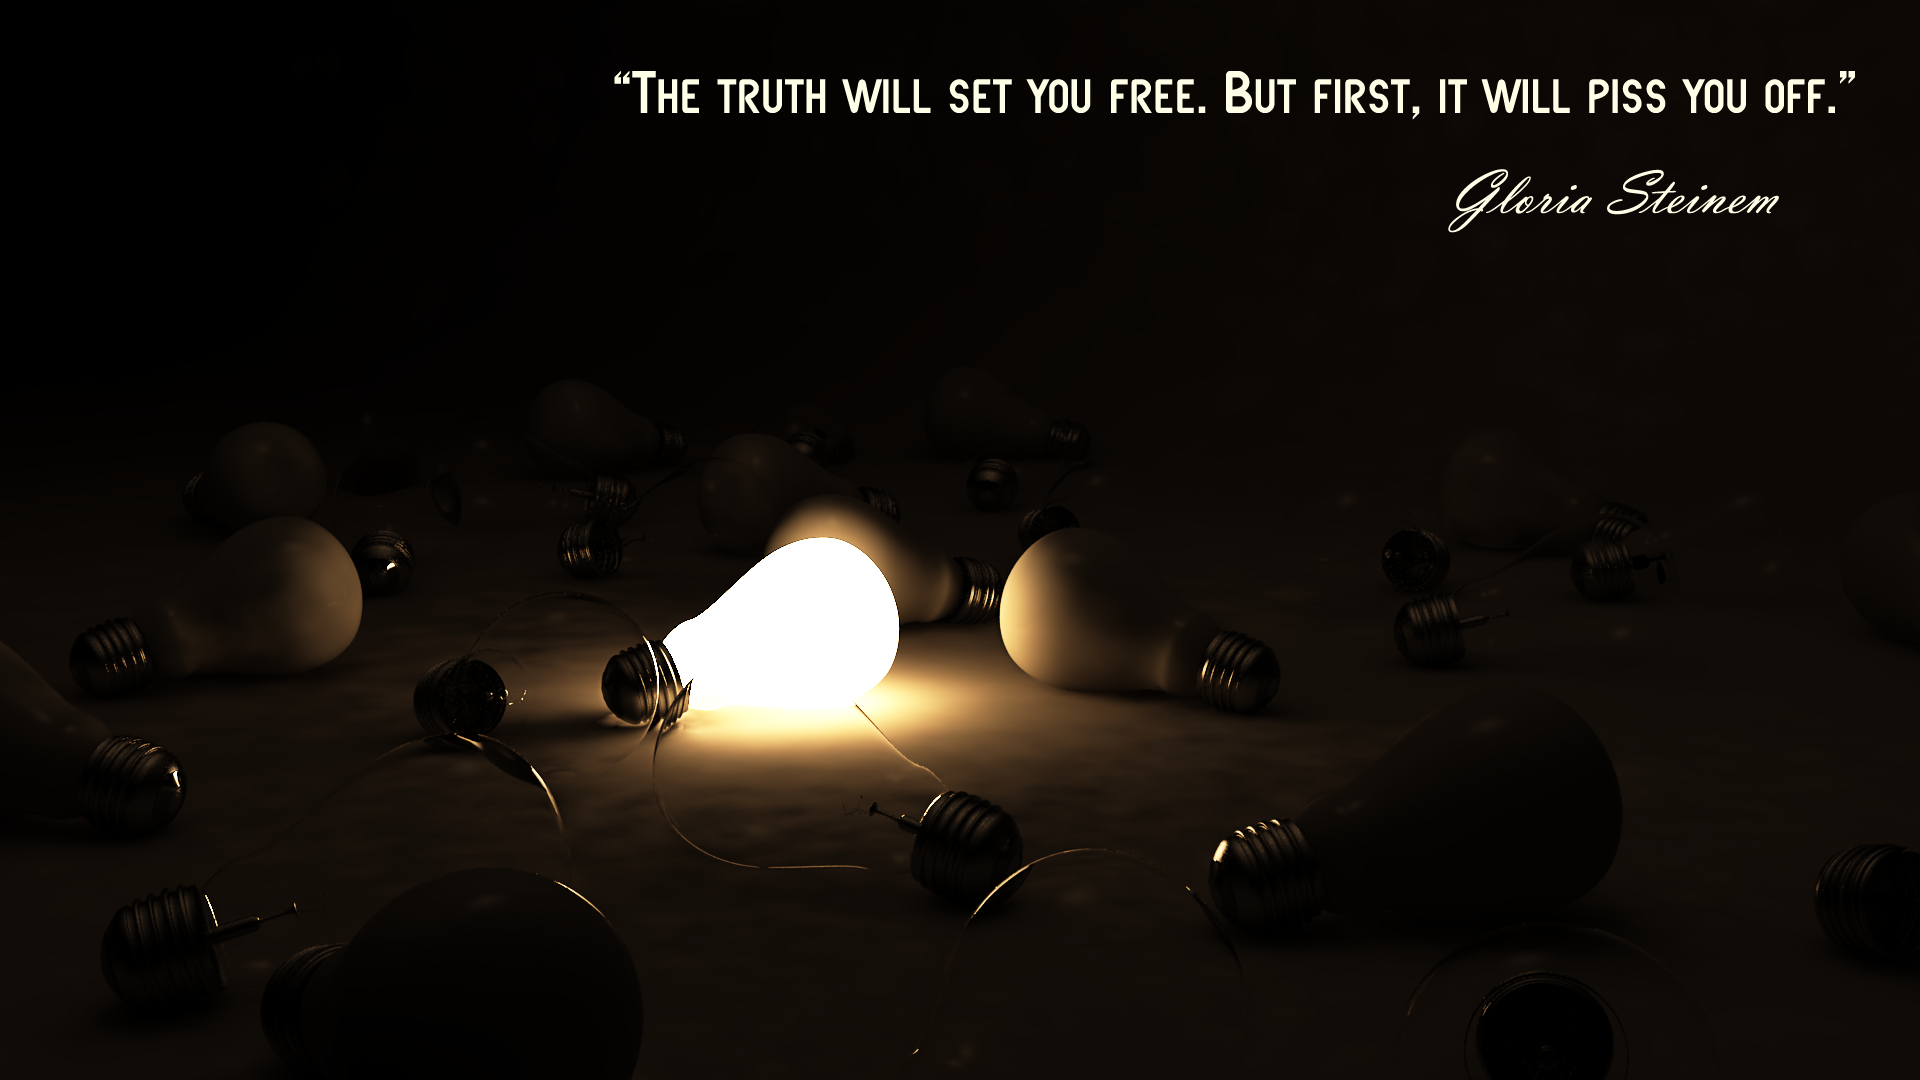 The Truth Will Set You Free Gloria Steinem Live By Quotes